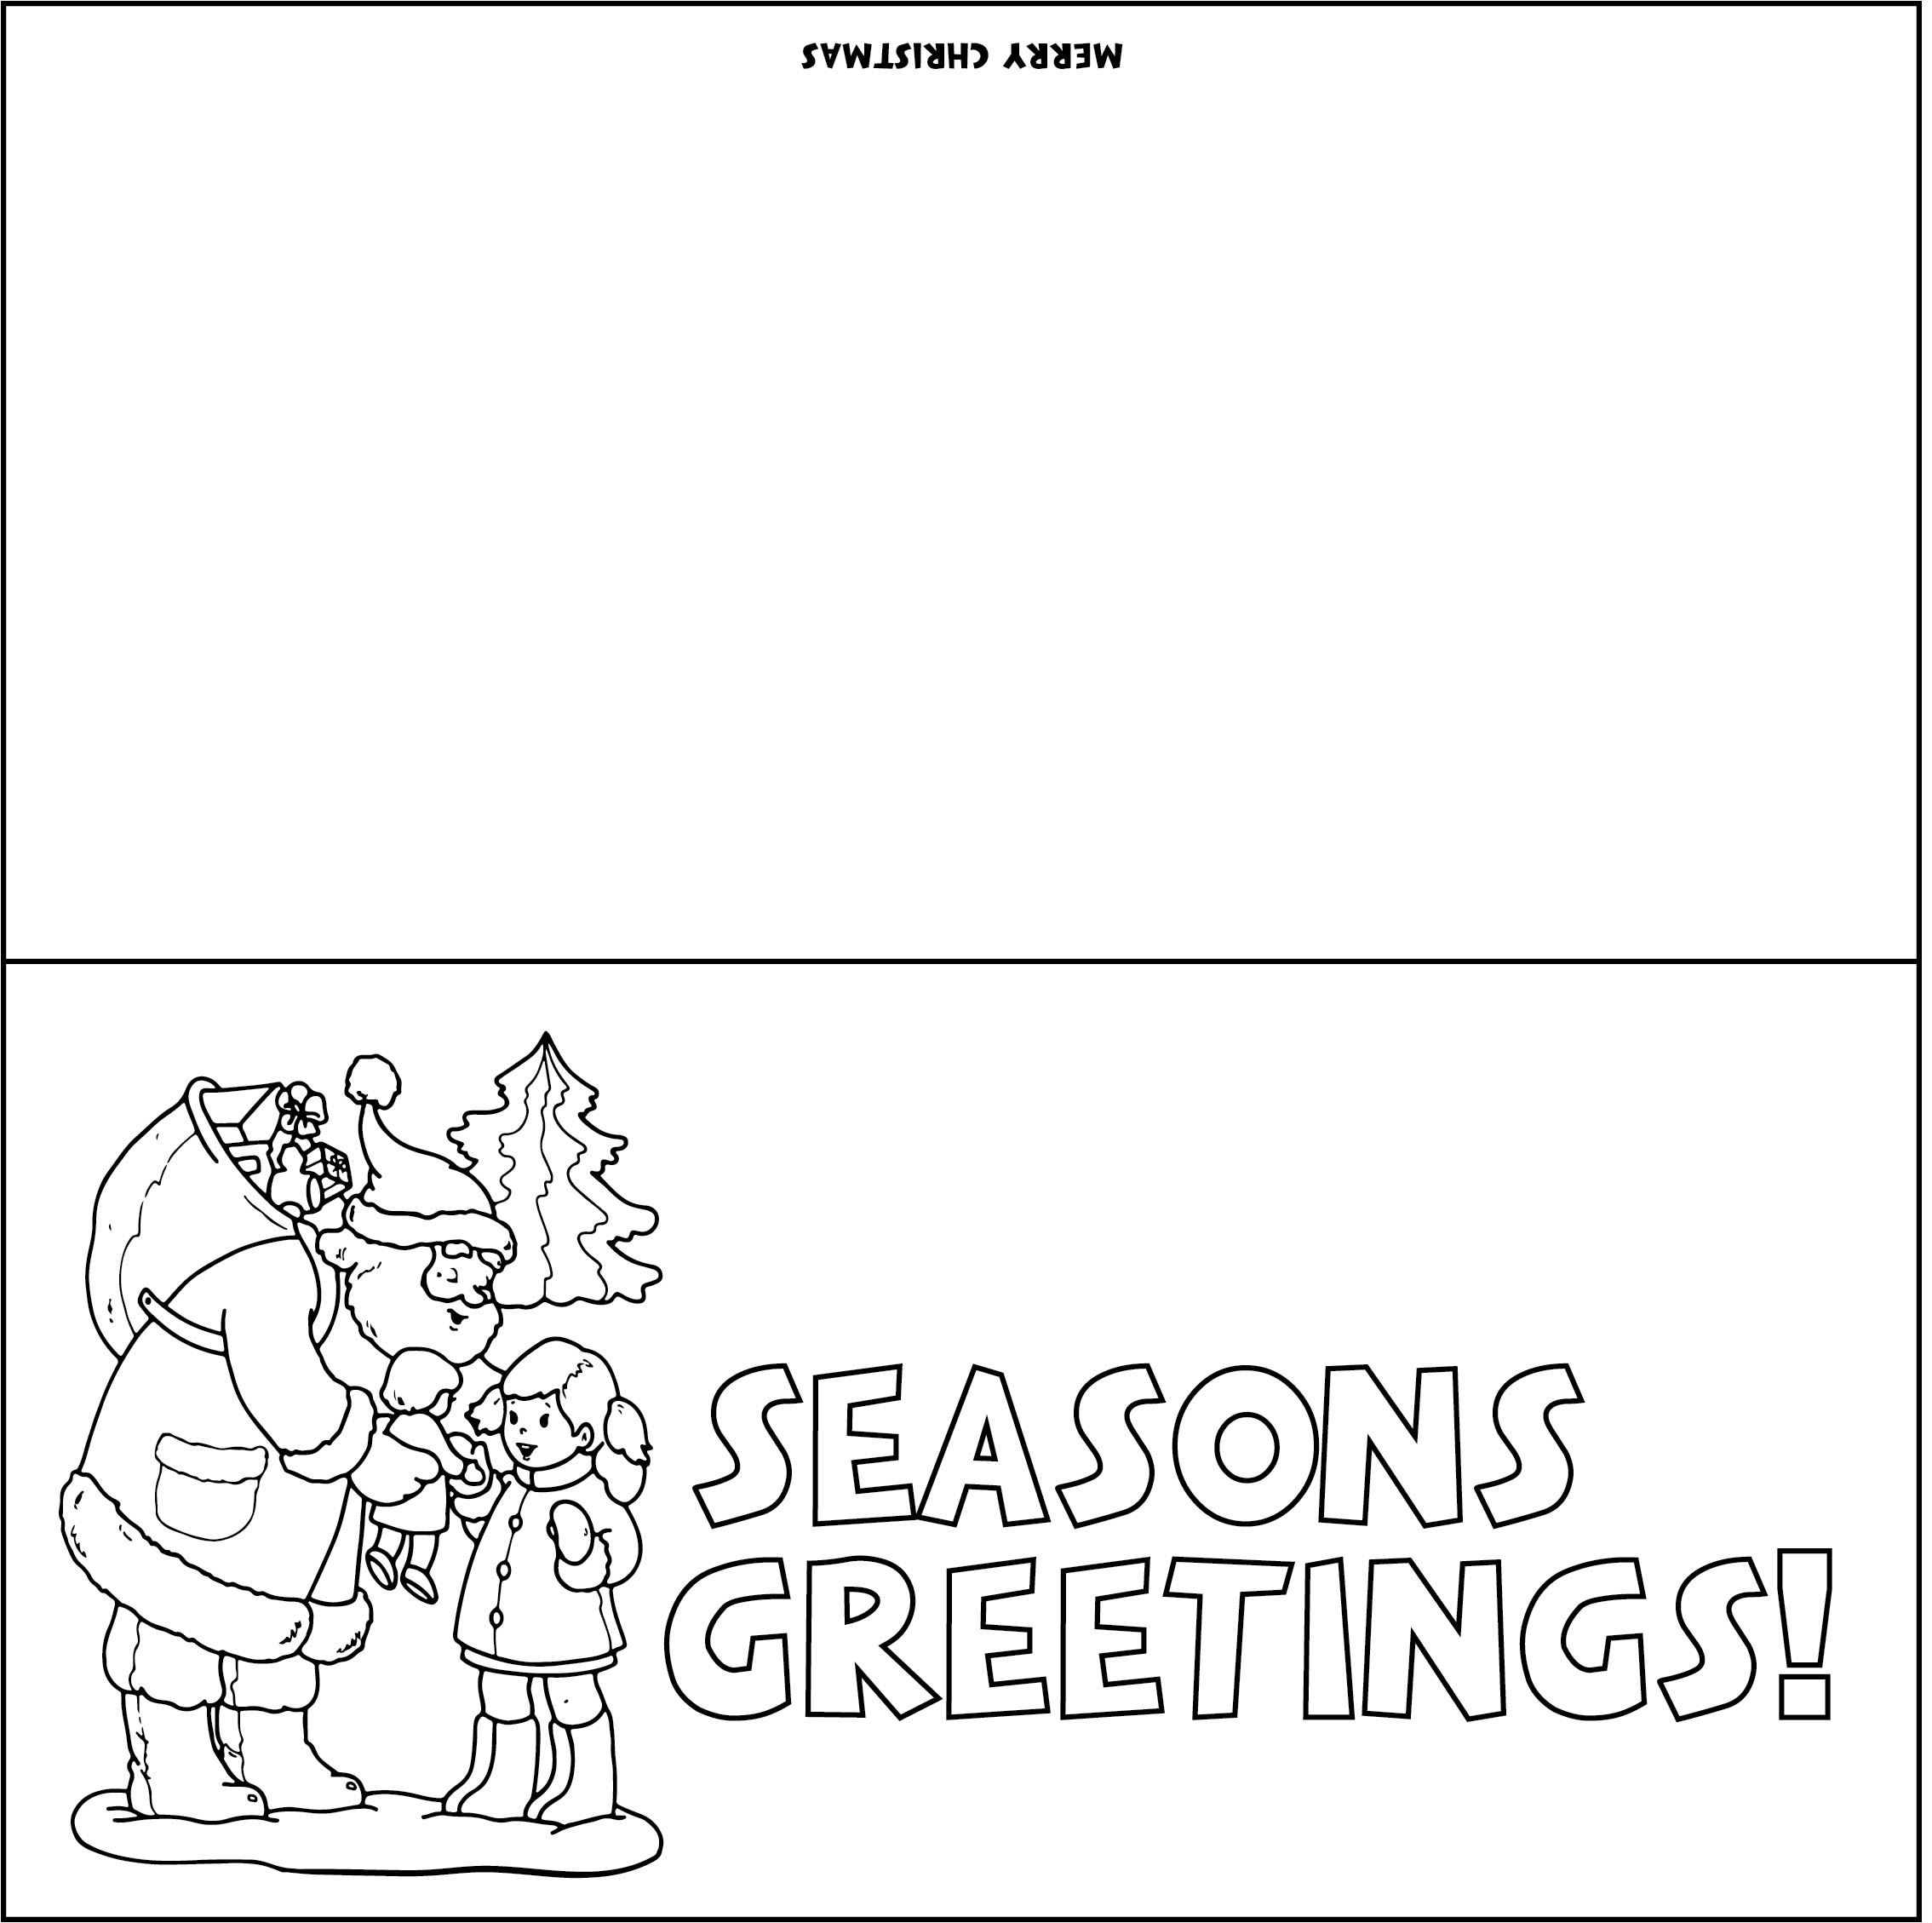 Christmas Printable Images Gallery Category Page 1